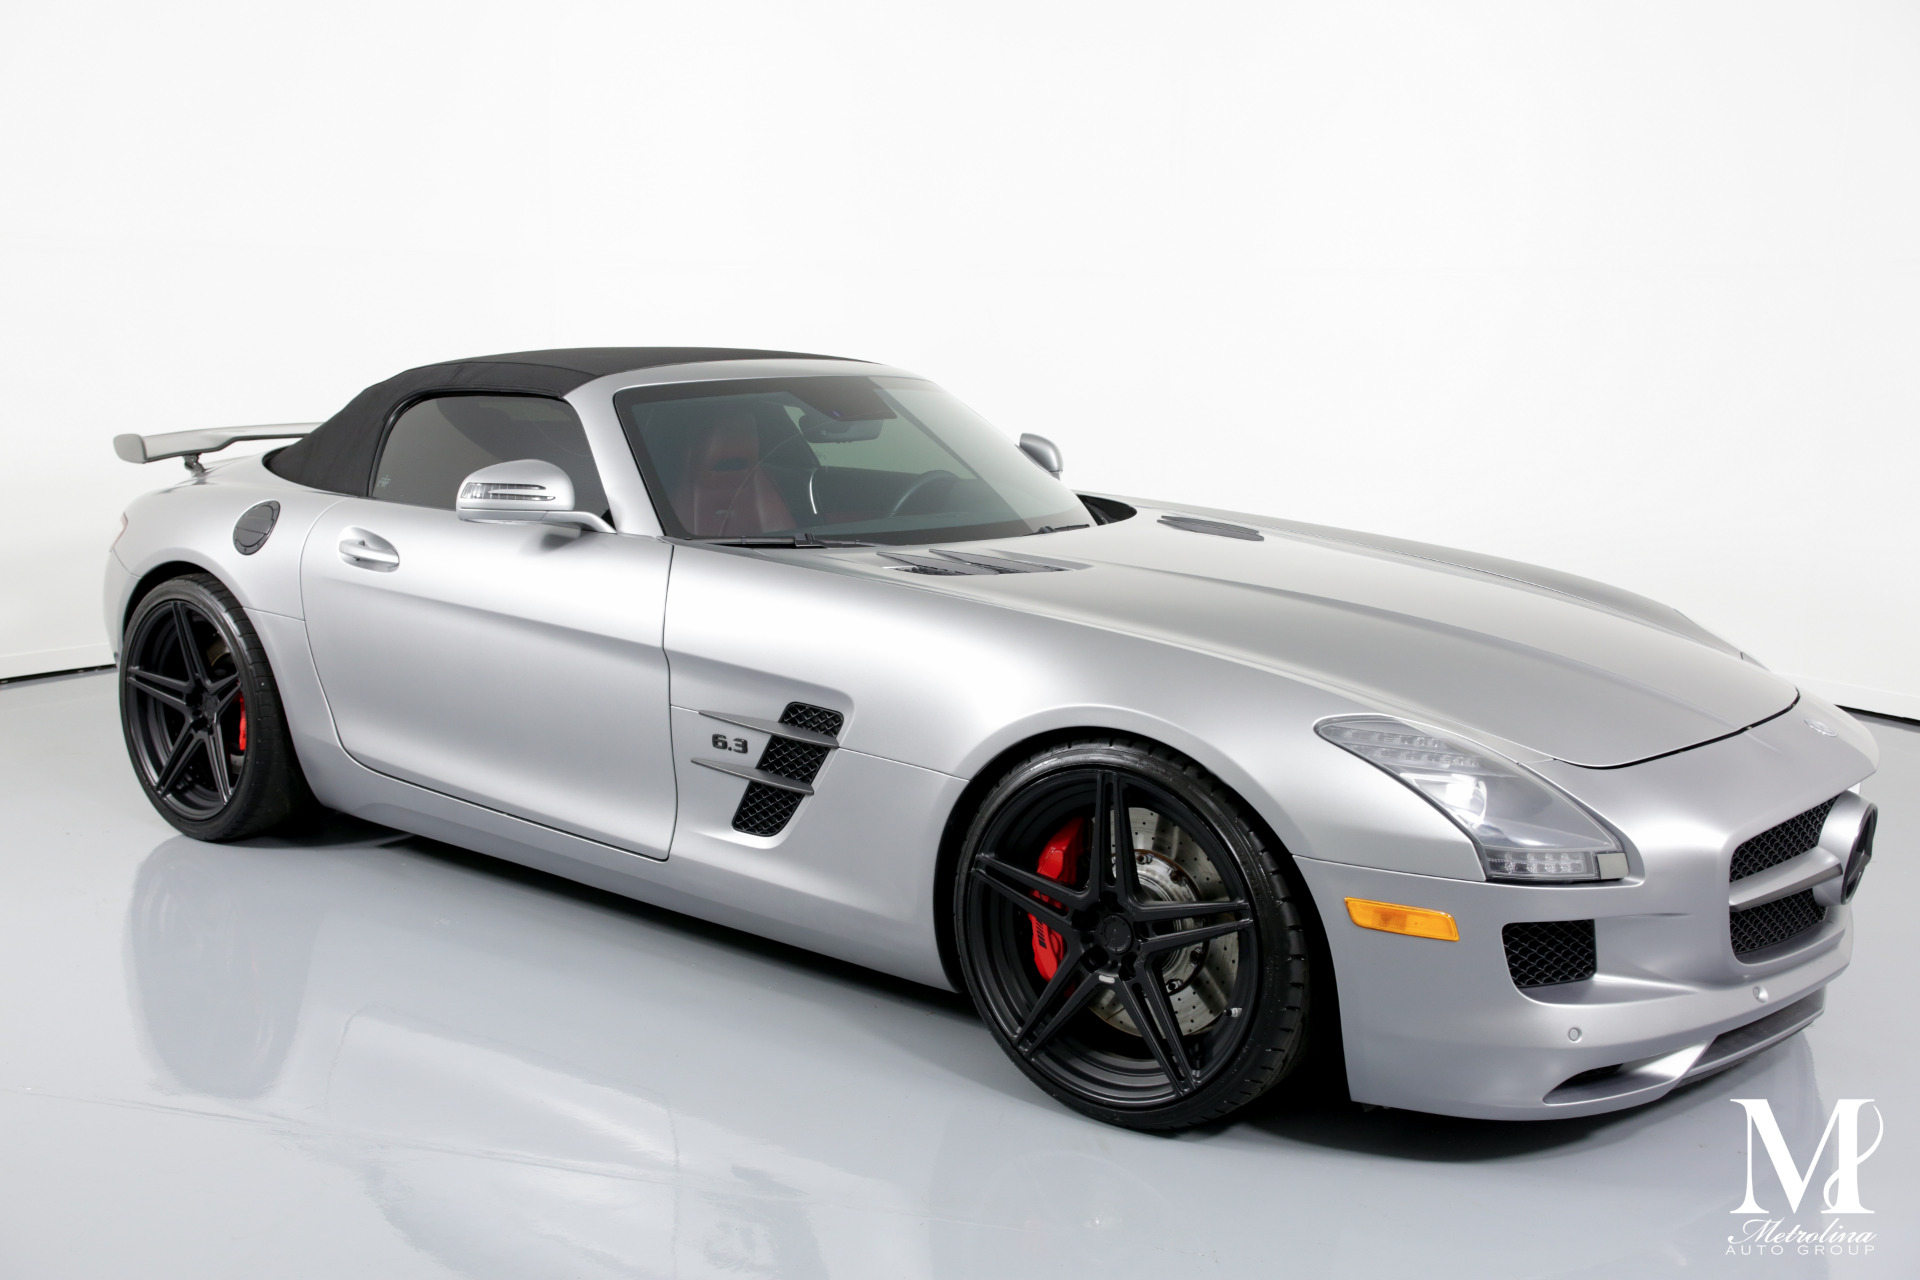 Used 2012 Mercedes-Benz SLS AMG for sale $139,996 at Metrolina Auto Group in Charlotte NC 28217 - 2